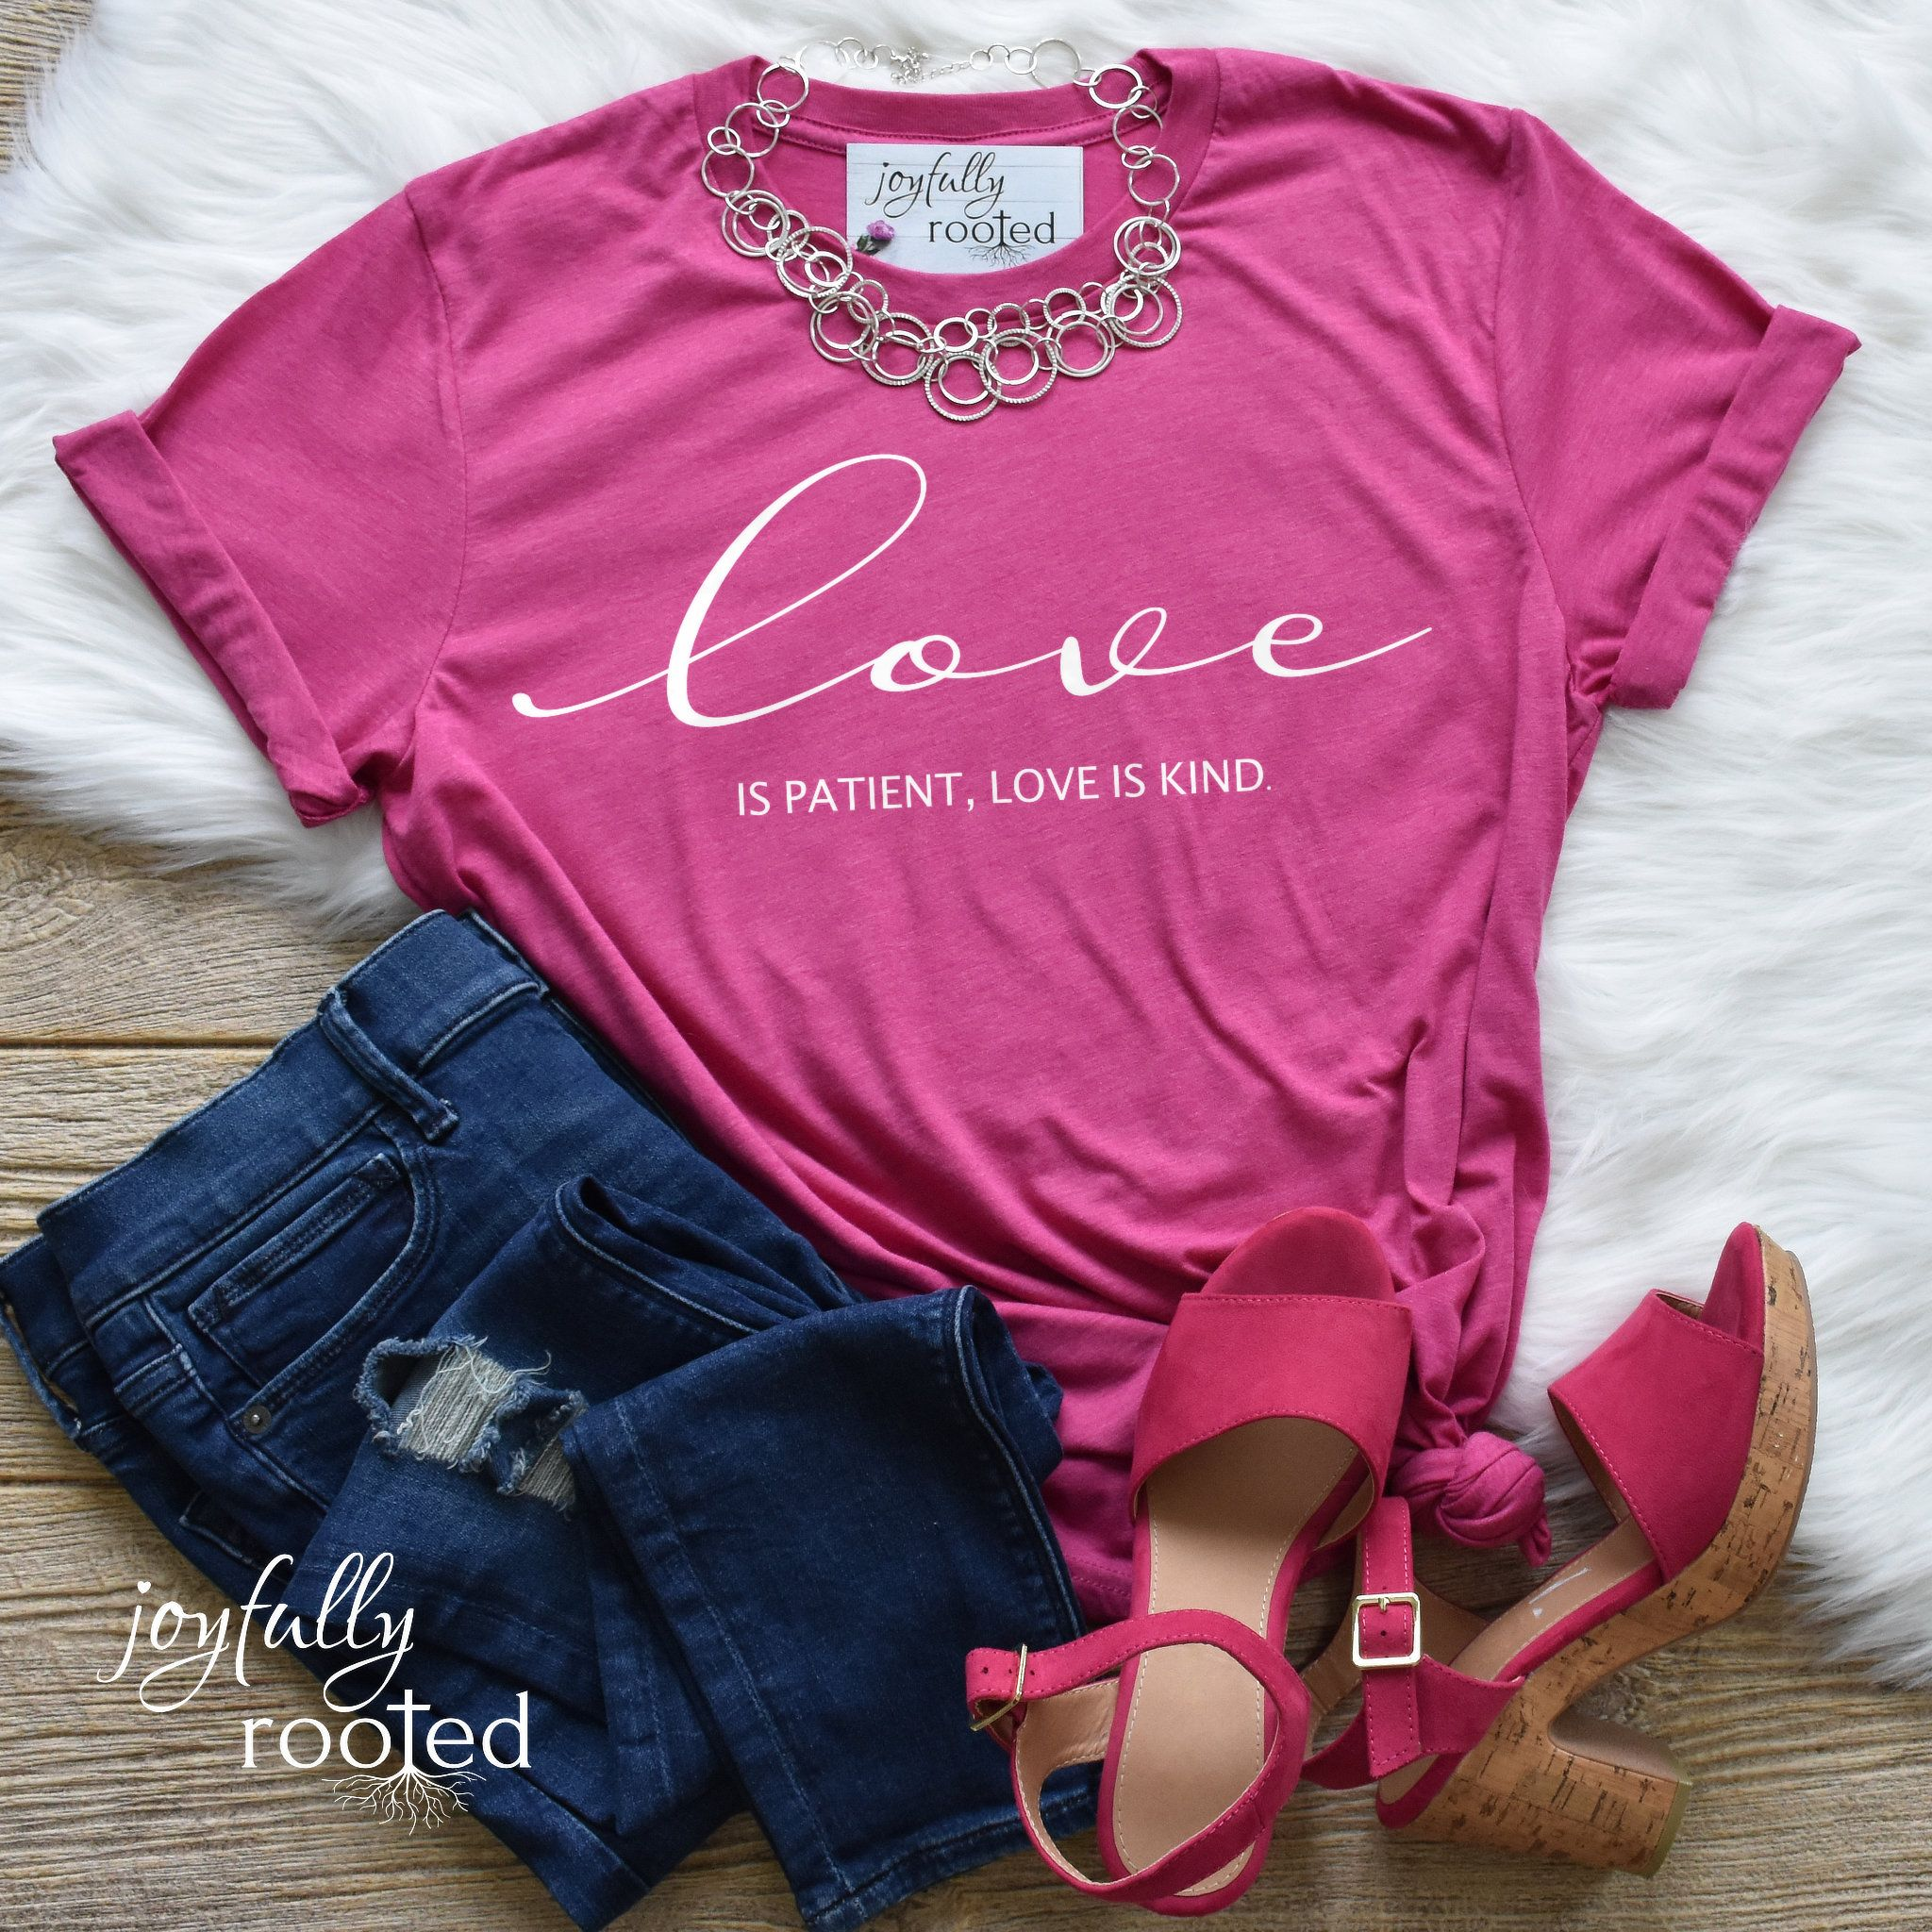 073490c99 Love what you wear and wear what you love! This super soft and cozy T-shirt  is the perfect way to celebrate love. Love is indeed patient and kind, ...